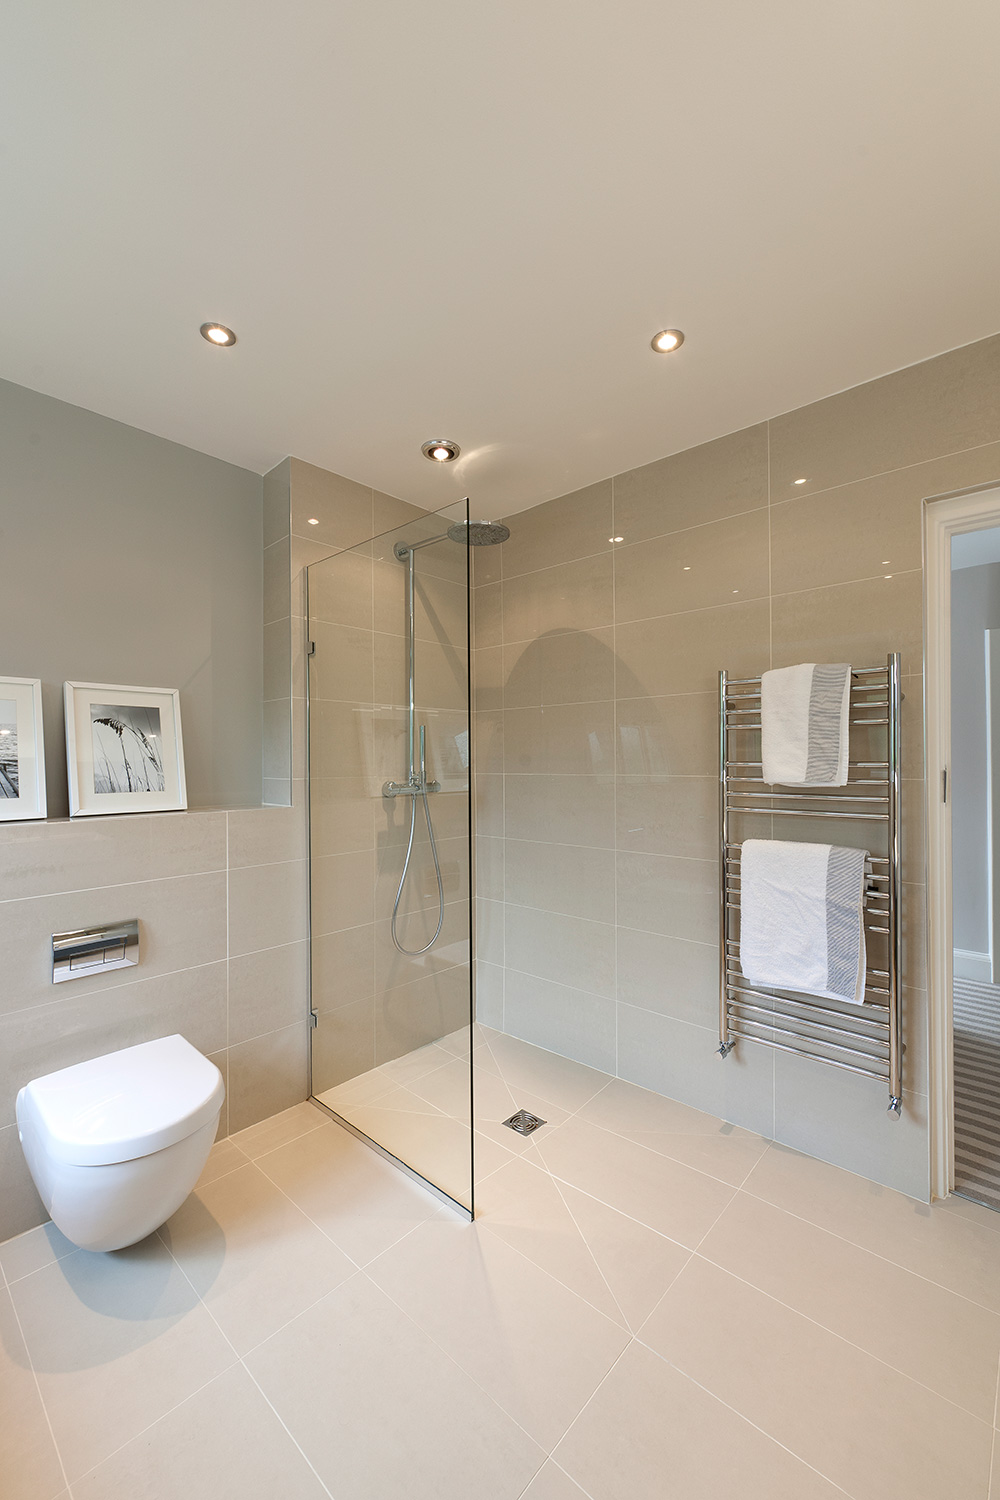 1-nikki-rees-wetroom-bathroom-interior-design-wimbledon-london-surrey